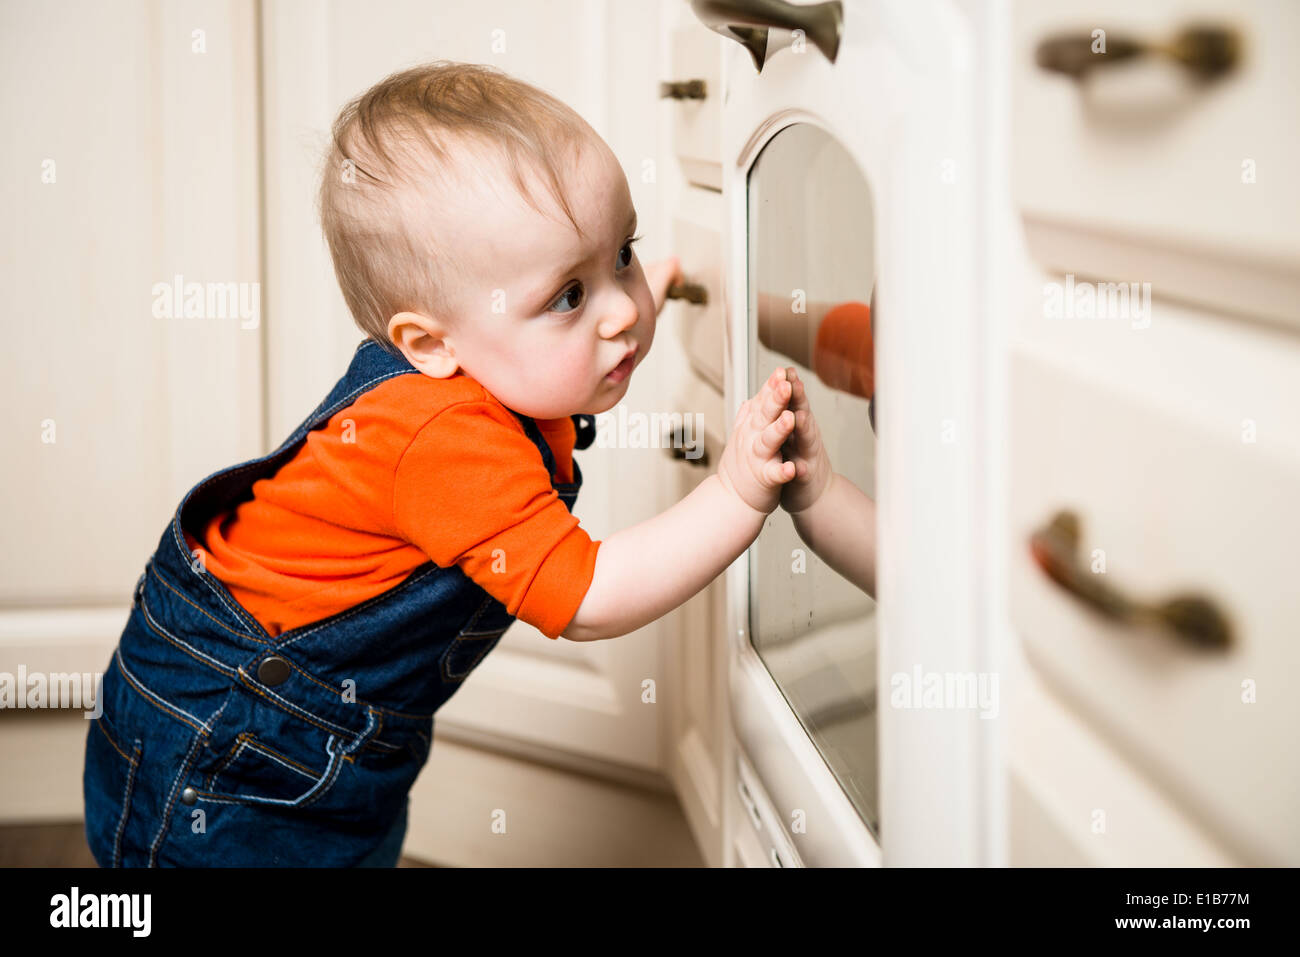 Curious baby watching through glass of kitchen oven - Stock Image